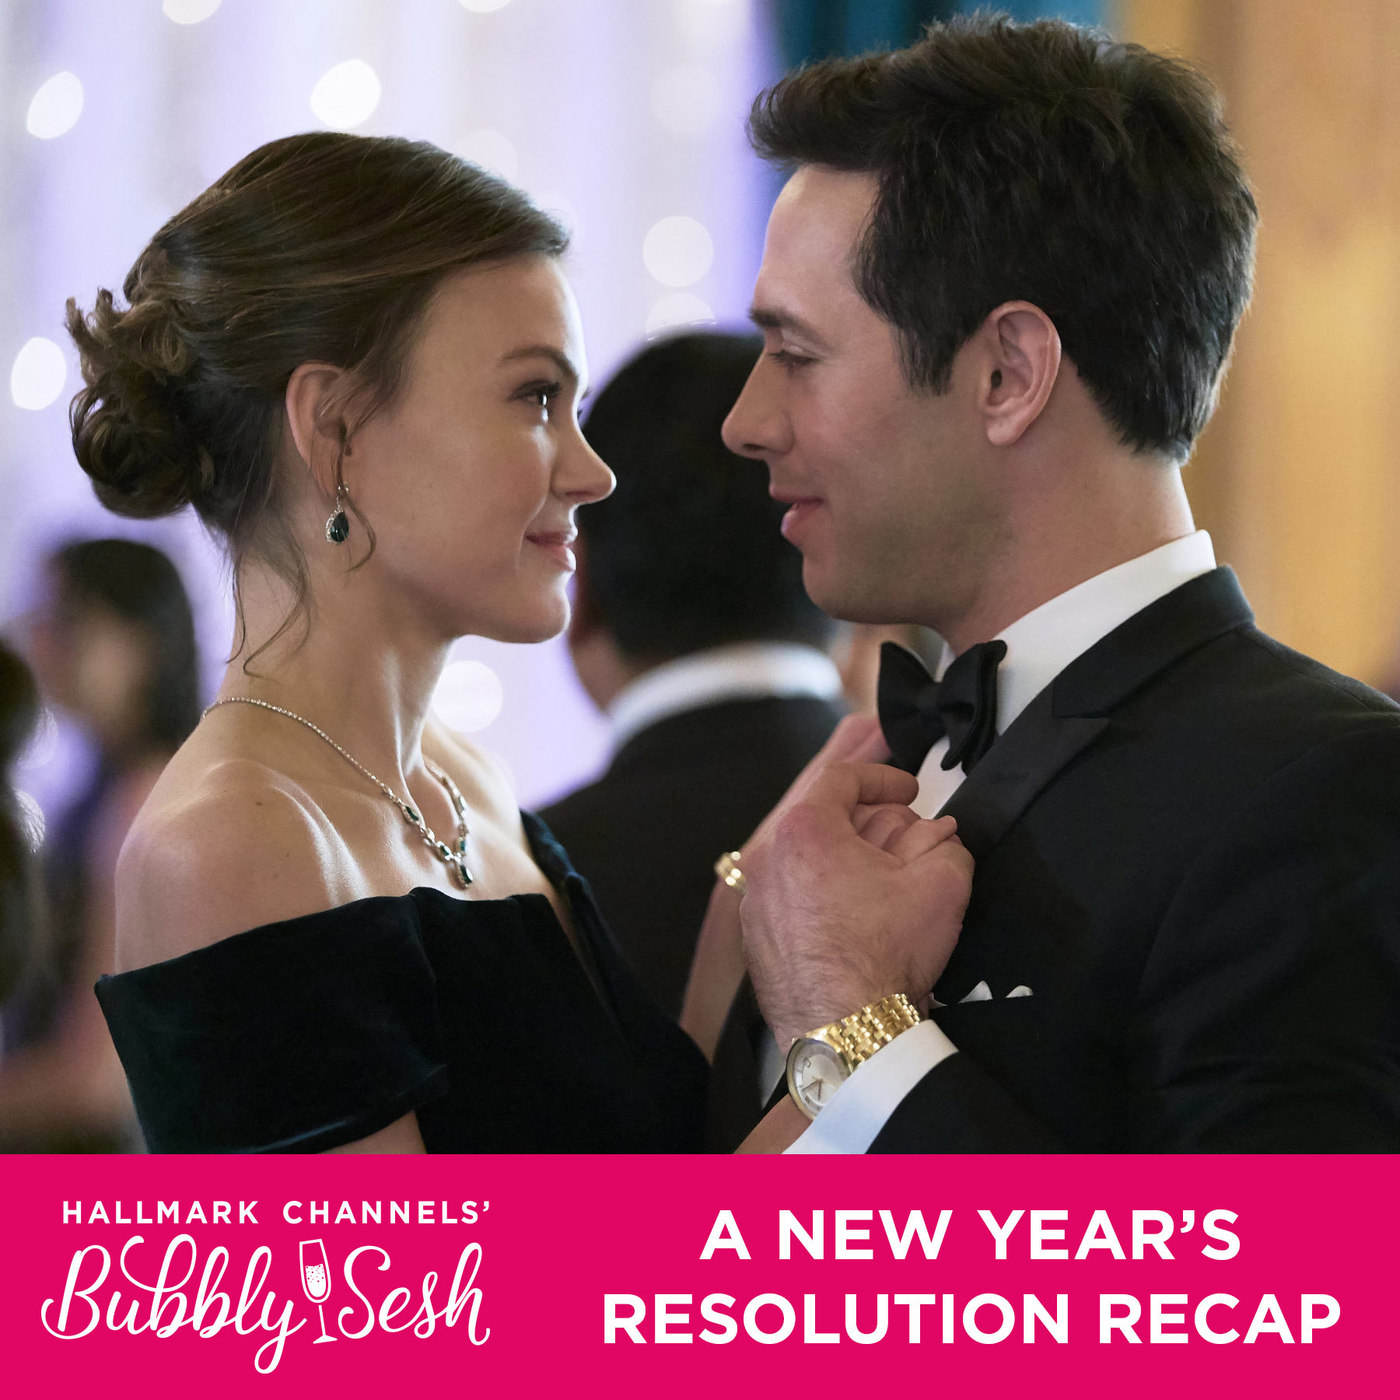 A New Year's Resolution Recap